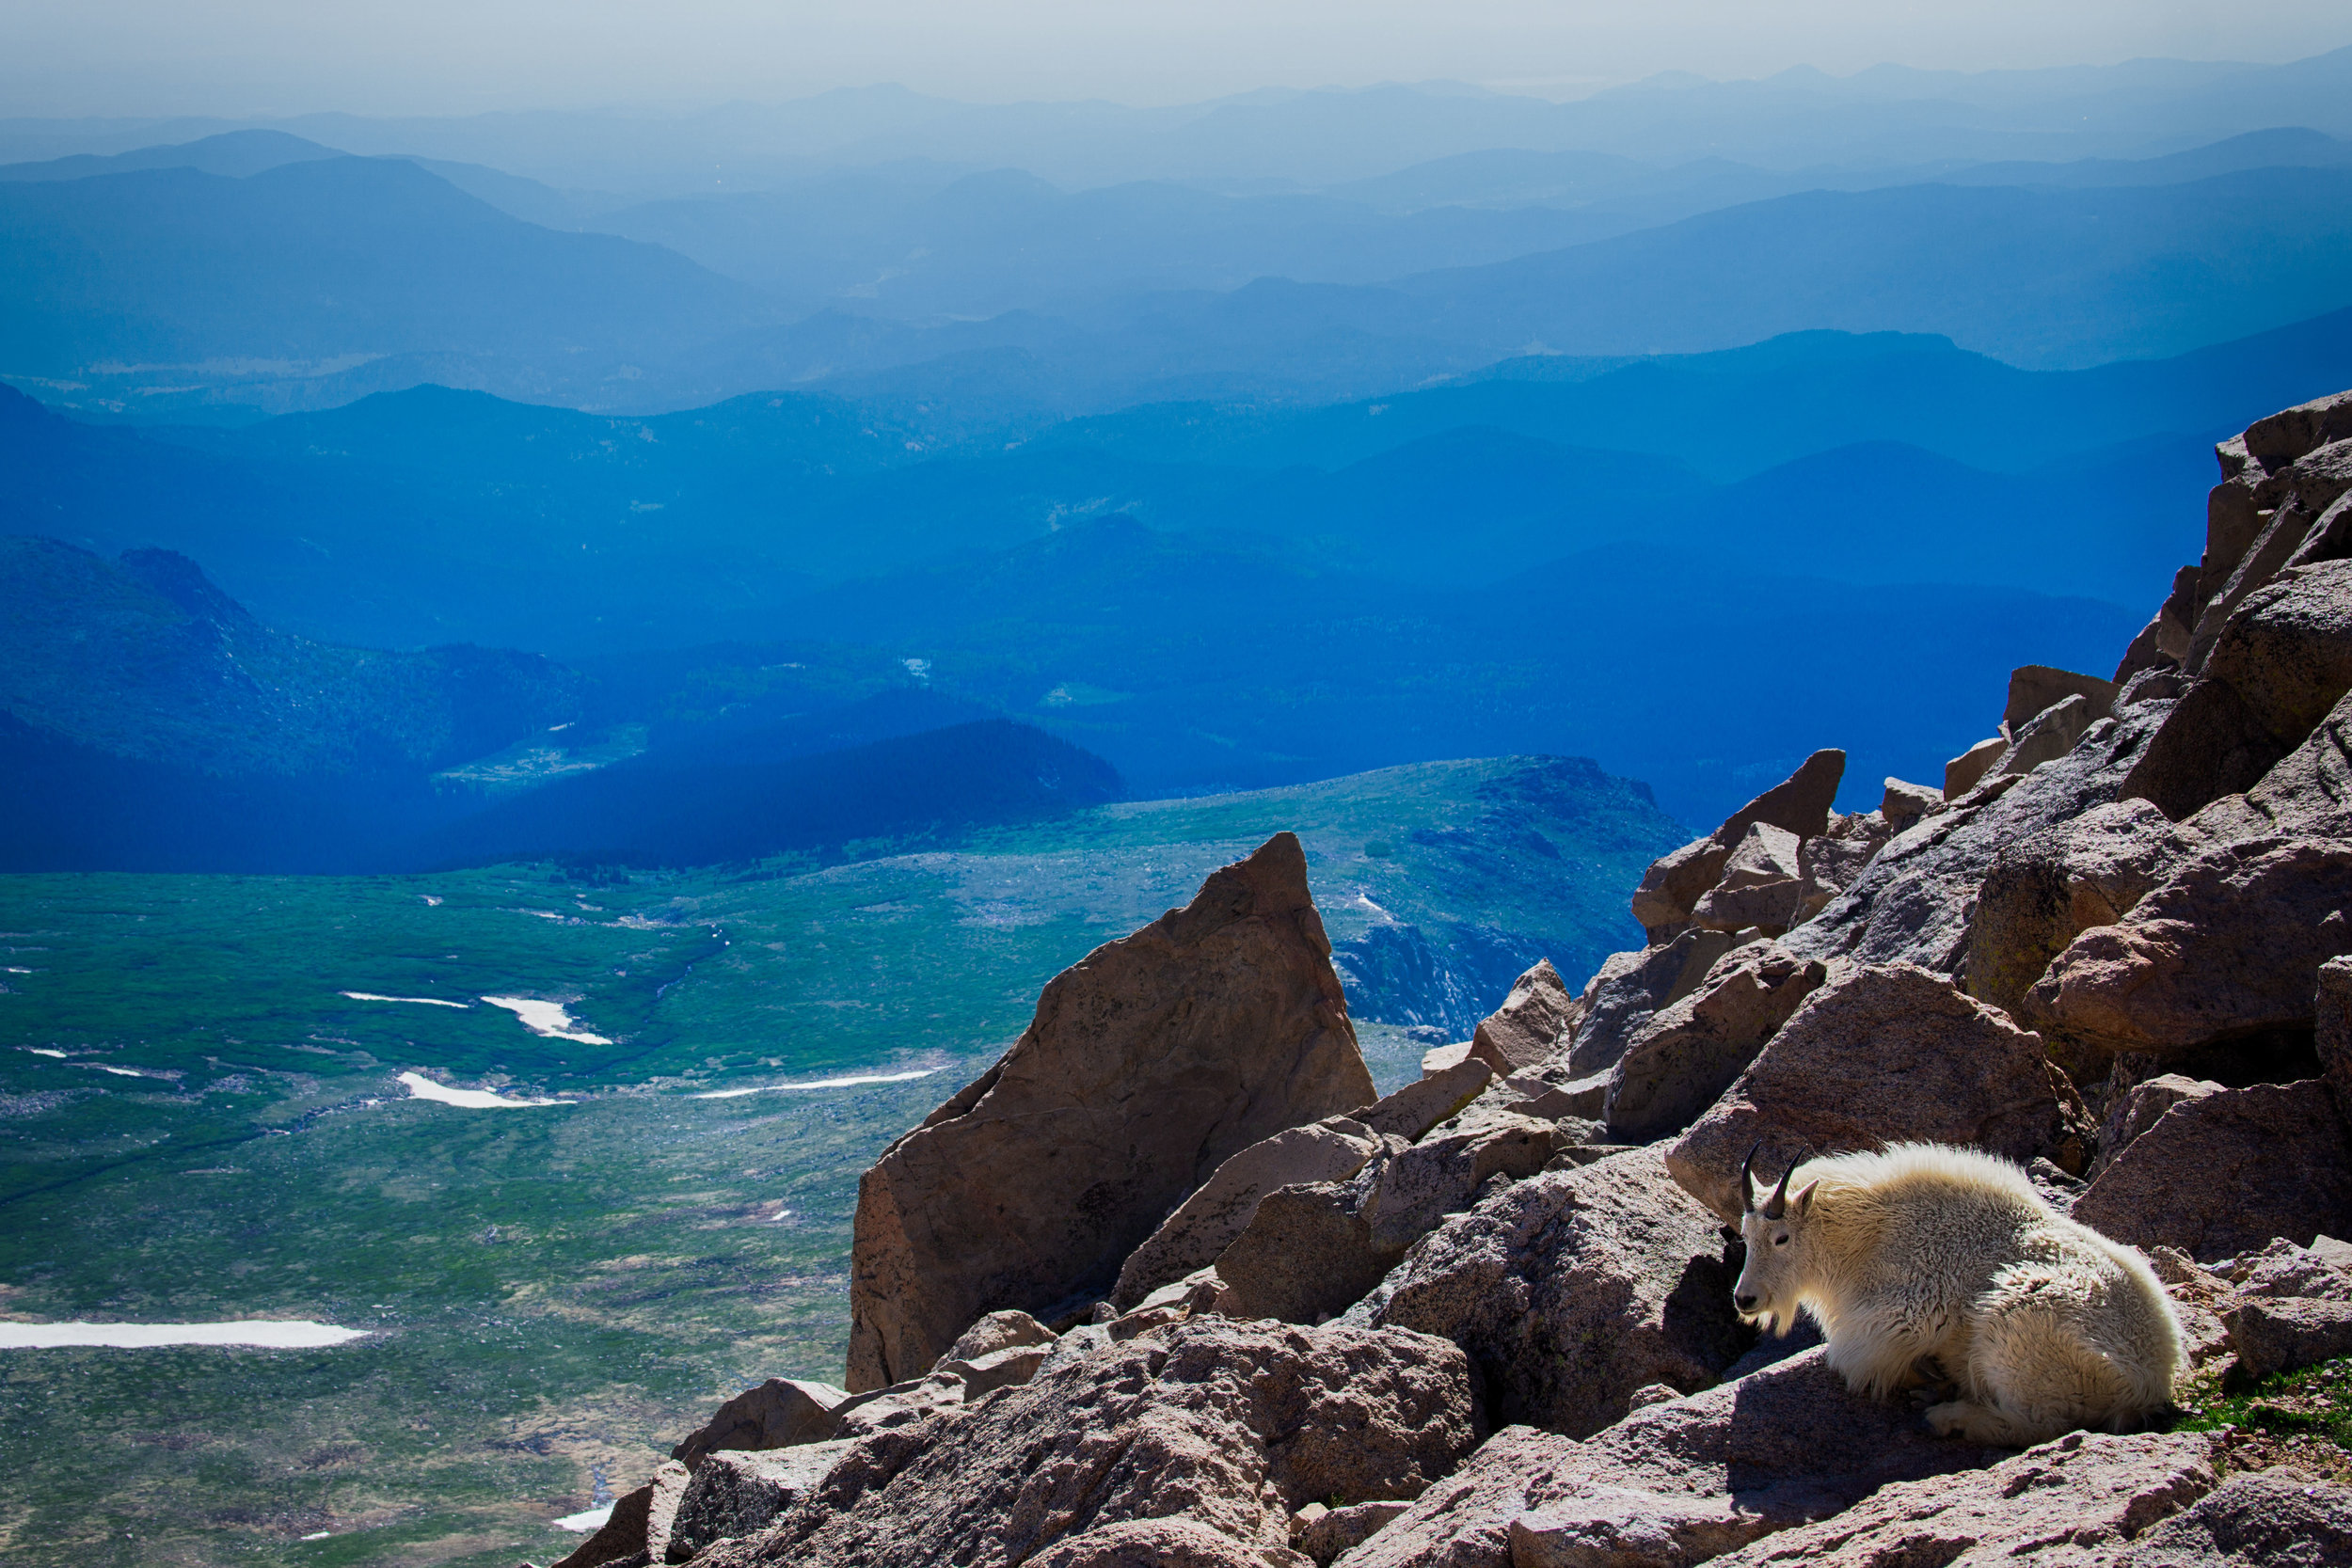 vickygood_travel_photography_colorado_mt.evans_goats2.jpg